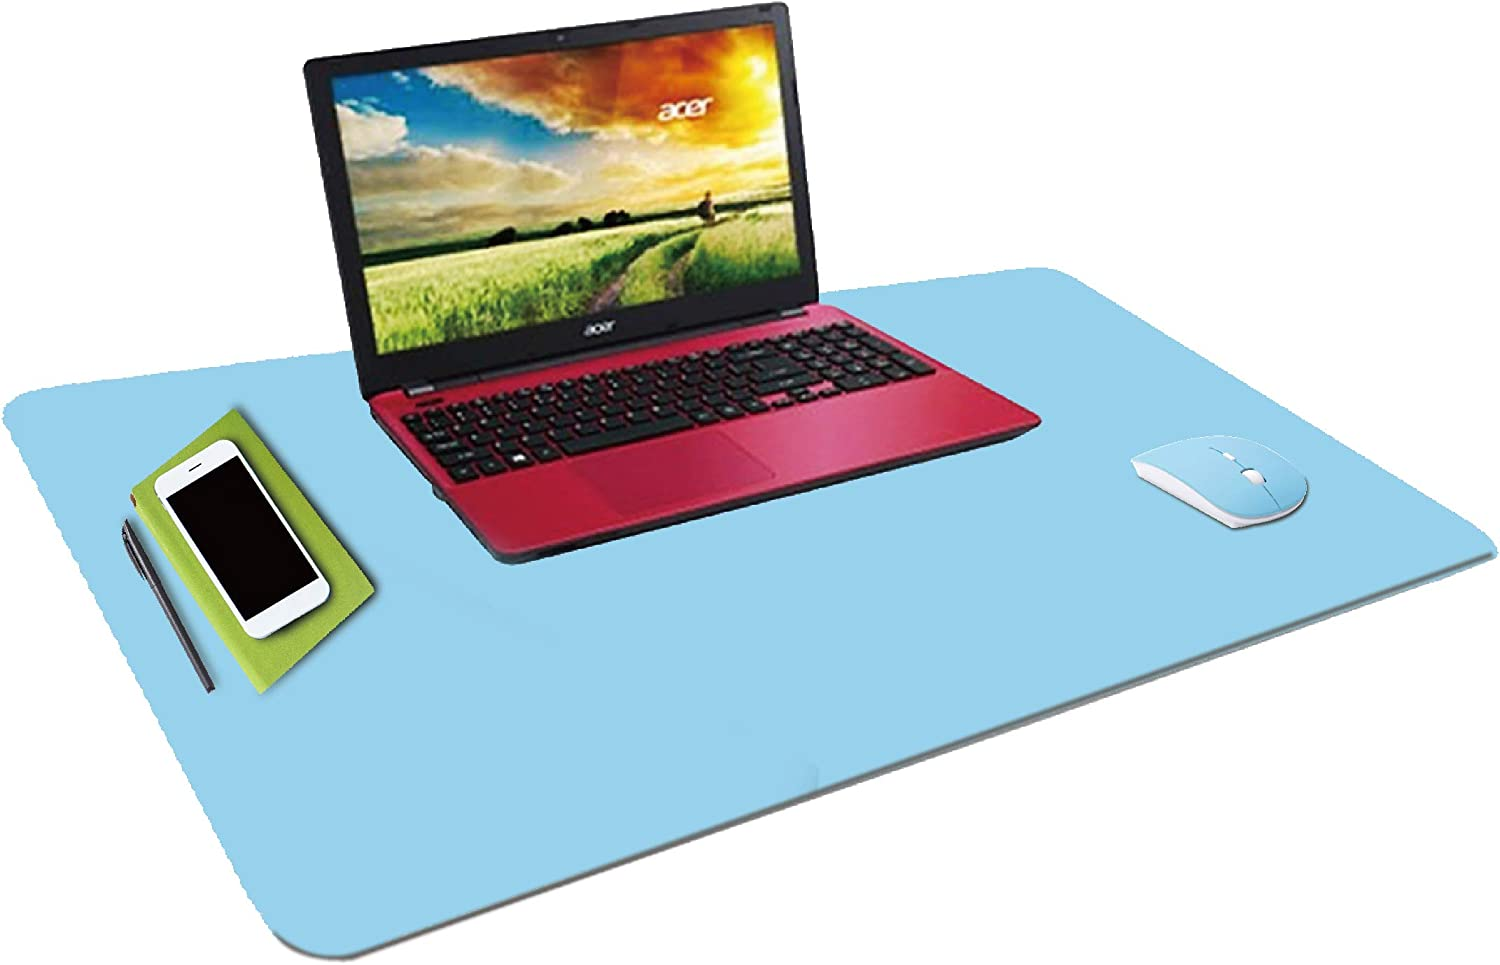 """WKX Dual Sided Office Desk Pad Laptop Desk PU Leather Desk Mat Computers Writing Mat and Mouse Pad Also Won't Break Your Budget (31.5"""" x 15.7"""") Two-Color(l.Blue/Grey)"""